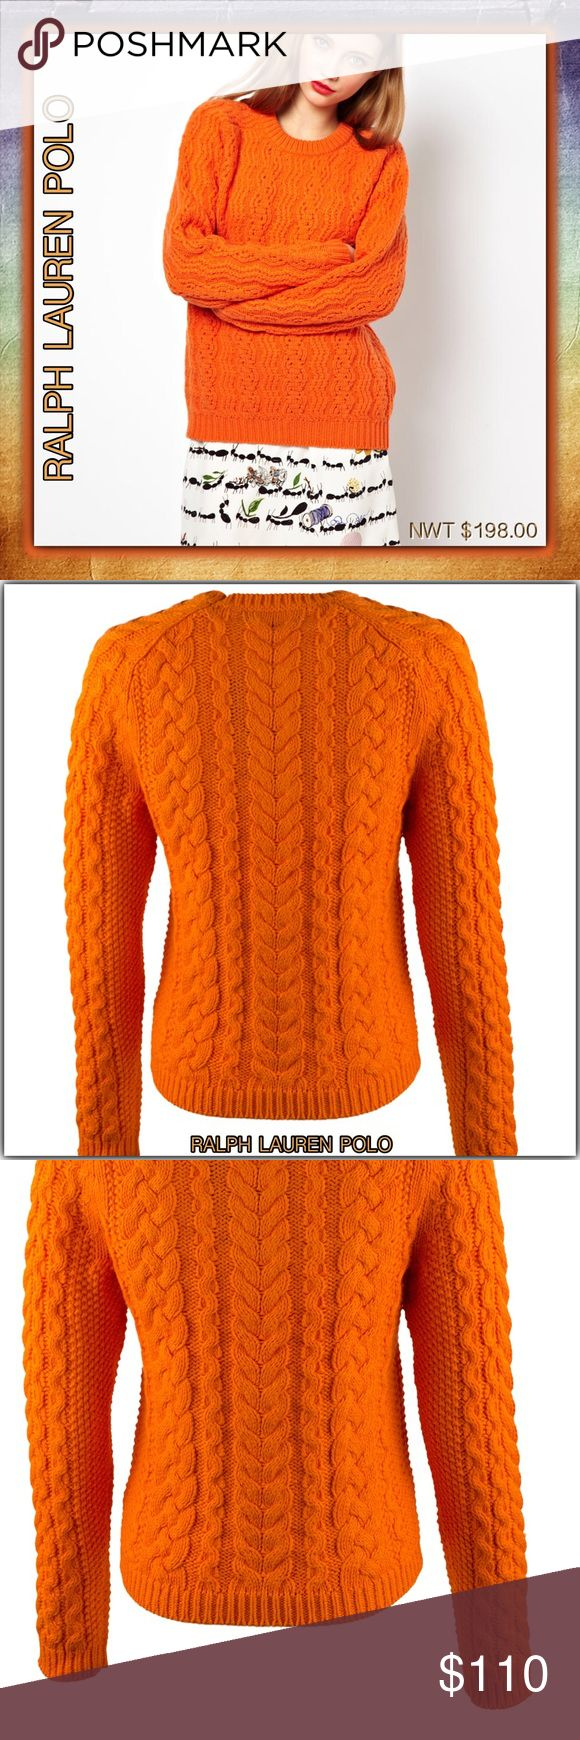 """Polo Ralph Lauren Aran-Knit Crew-neck Sweater Sz M Polo Ralph Lauren Size Type: Regular  100% Cotton  Retail: $198.00. Tags are attached. No """"sale stickers"""". HTF for this price! This Gorgeous Sweater is shipped with care. No delay. Measures flat across at bust-18"""", at  length 26"""", at waist 16"""", stretchy sweater material...(cozy). Pinch open & close pics,  as they are part description. All Poshmark sales are final. Ask questions, if needed.  Beautiful Color of Sunkist Aran-knit pattern…"""